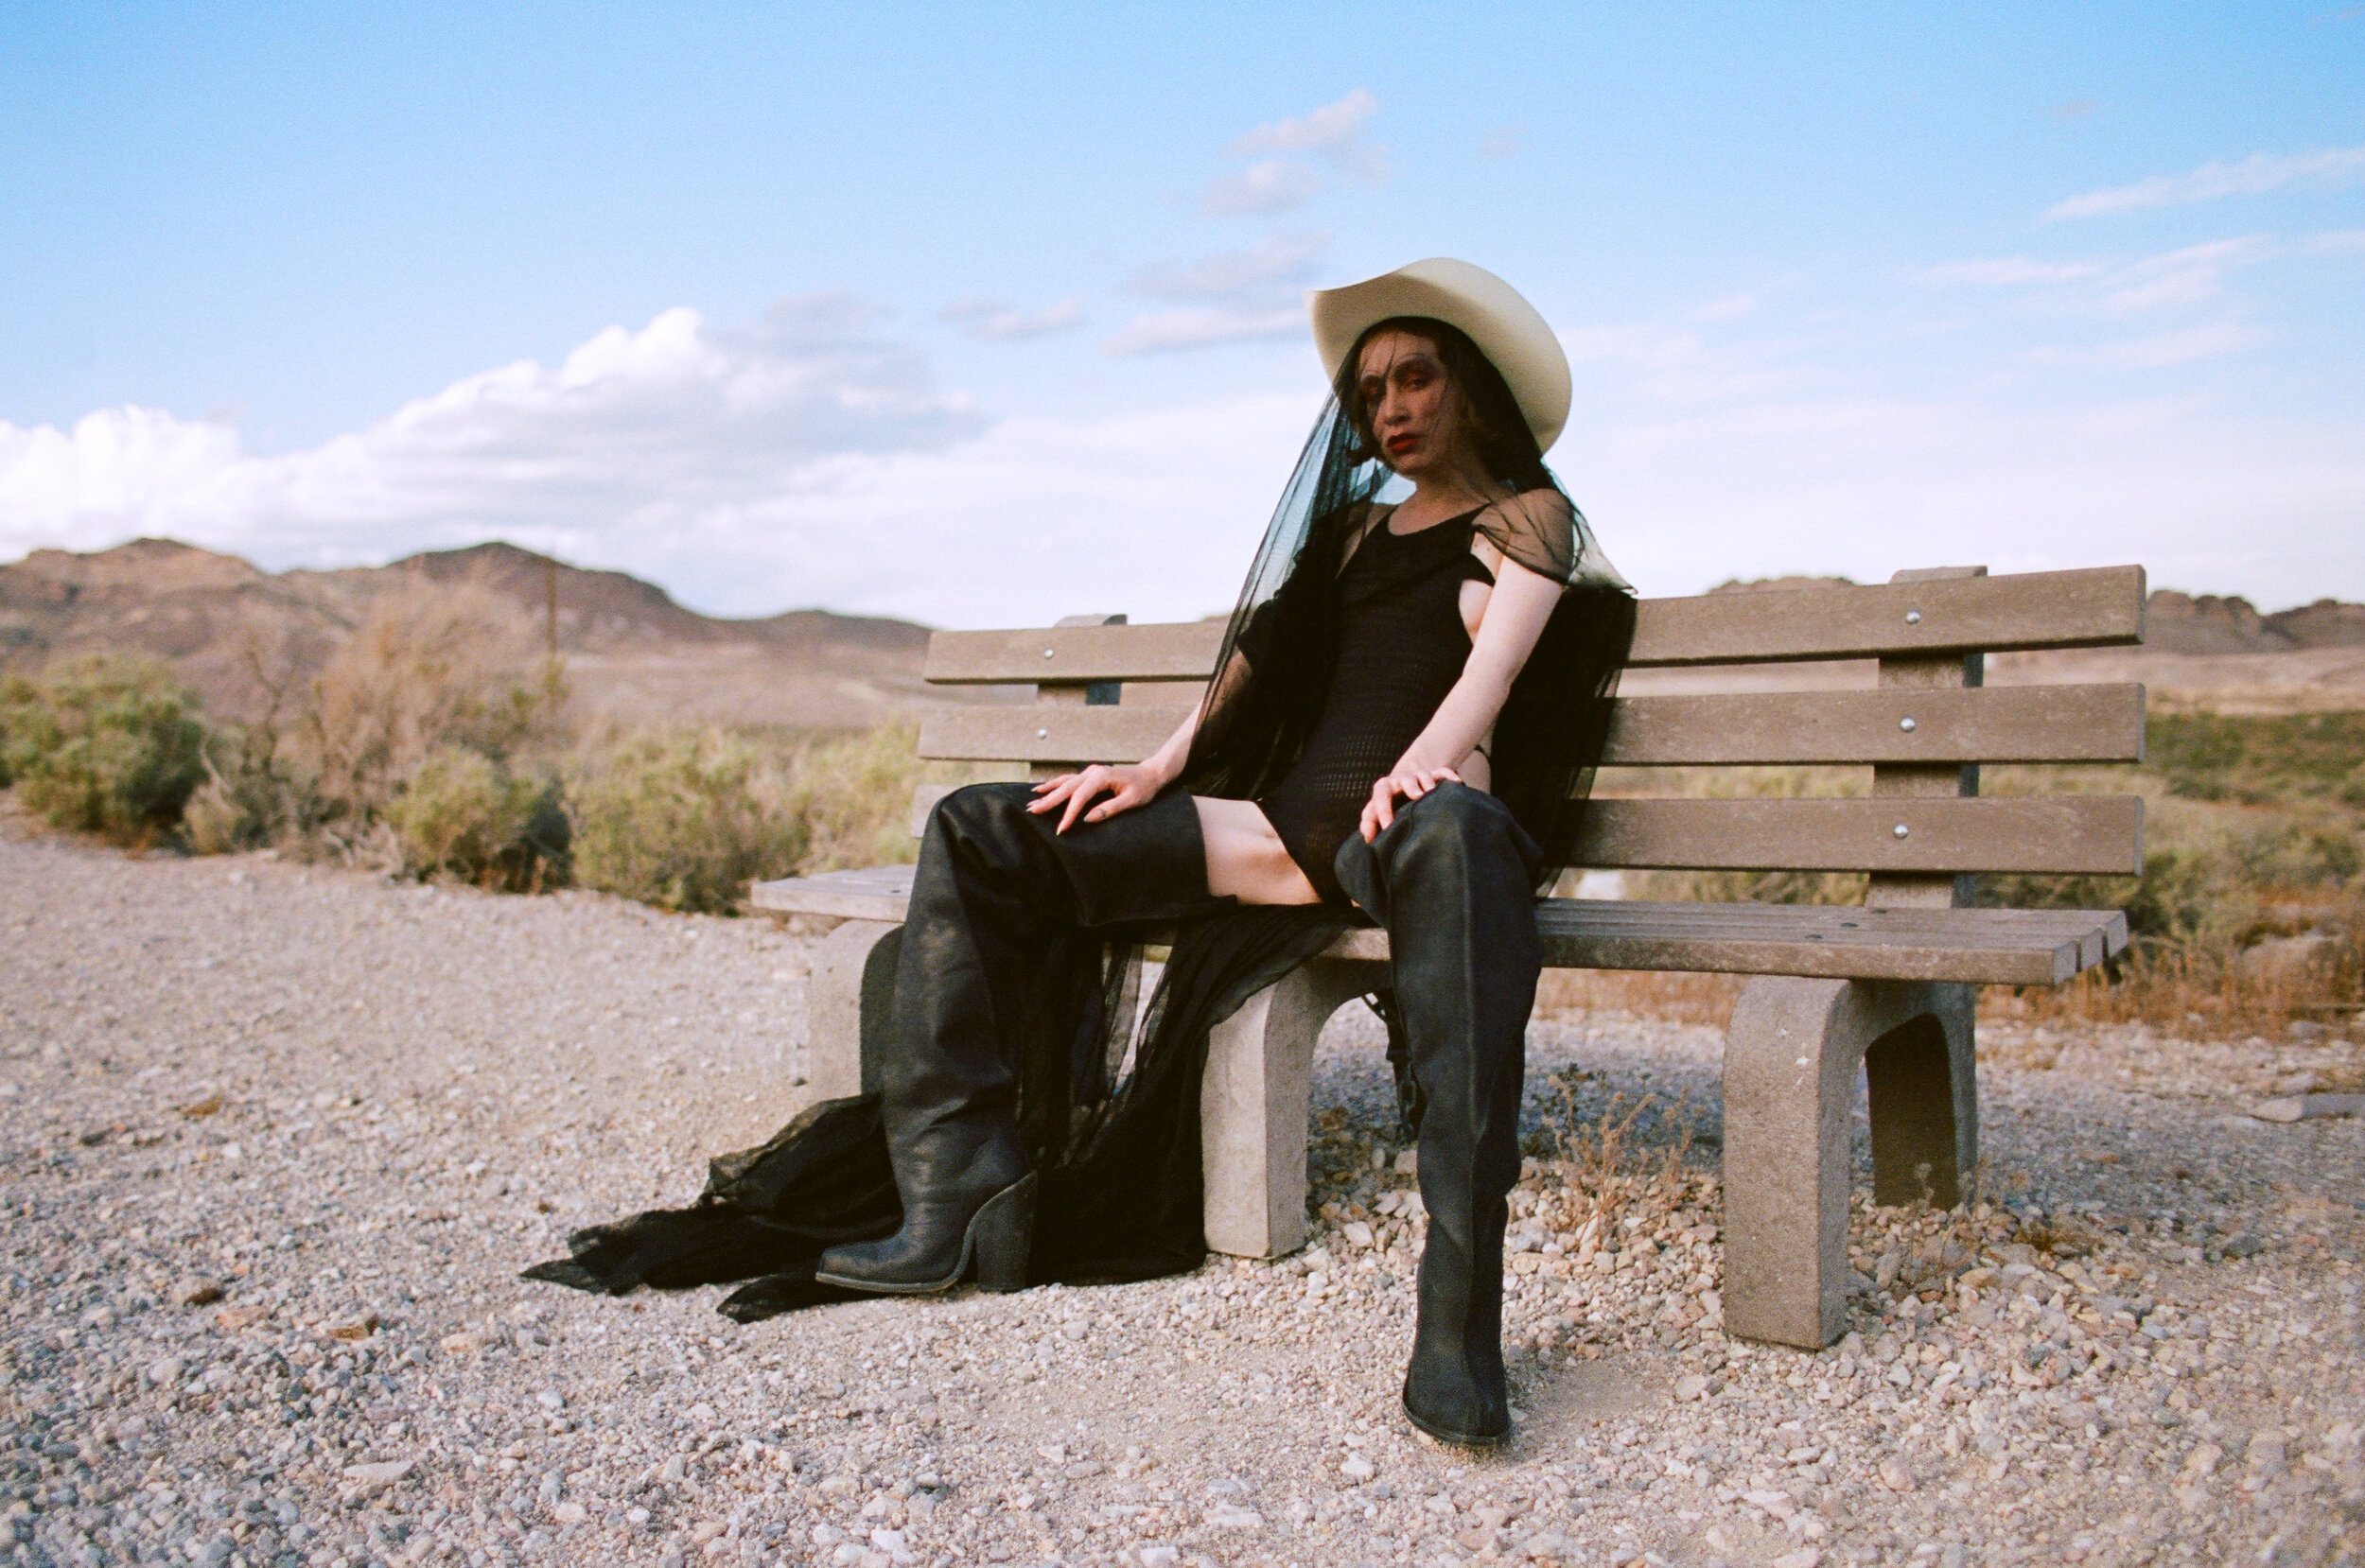 RUI ZHOU   bodysuit,   HARDEMAN   boots, and stylist's own hat.